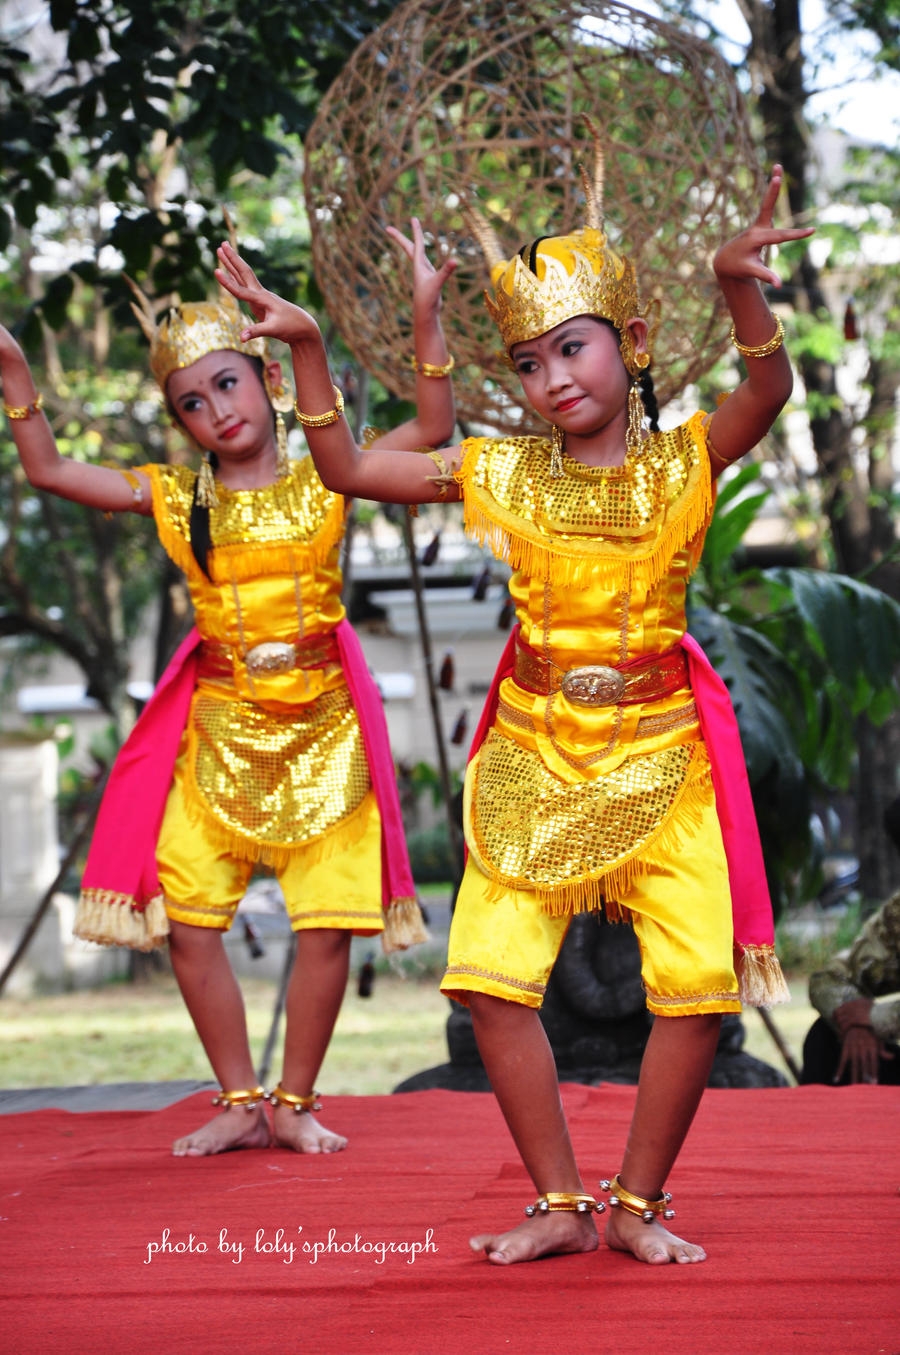 culture of indonesia Indonesia – the land of miracles bali blog, bali culture, bali life, bali travel, indonesia, traditions bali, travel to bali, бали indonesia is a country that has captivated my heart and stirred me to new depths of inspiration.